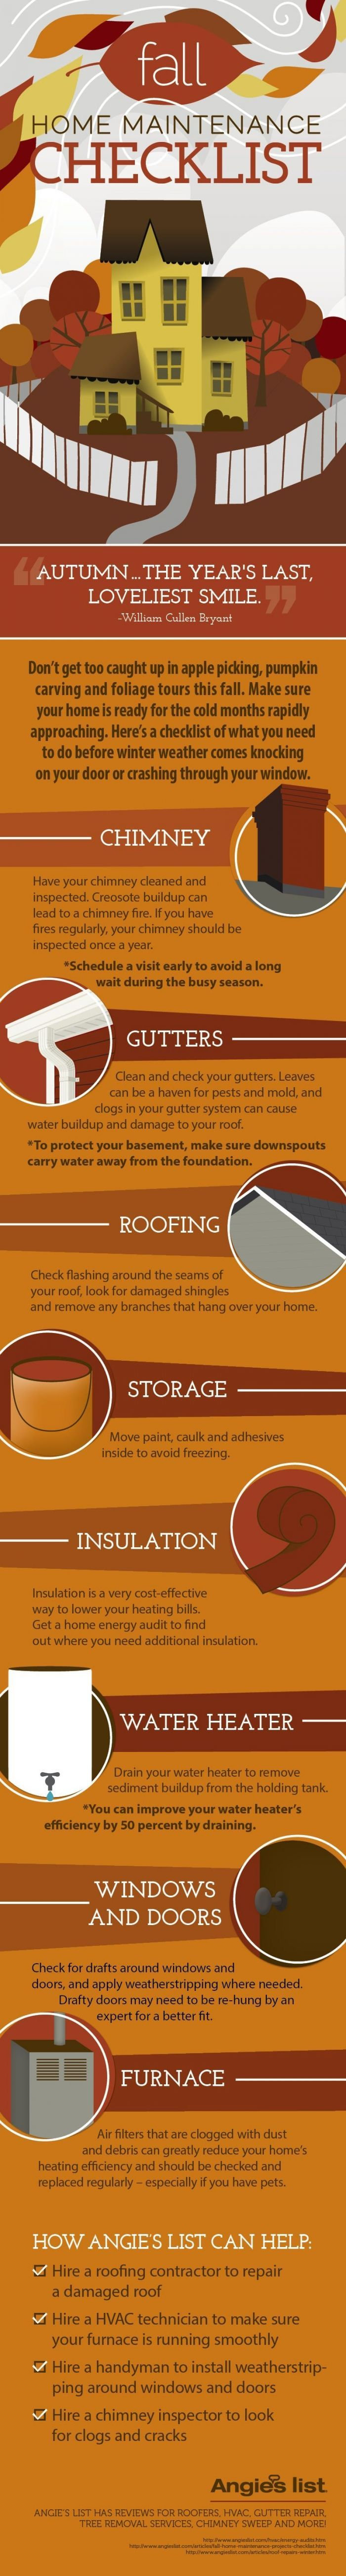 Fall Home Maintenance Tips 61 best cleaning tips images on pinterest | fall home, cleaning